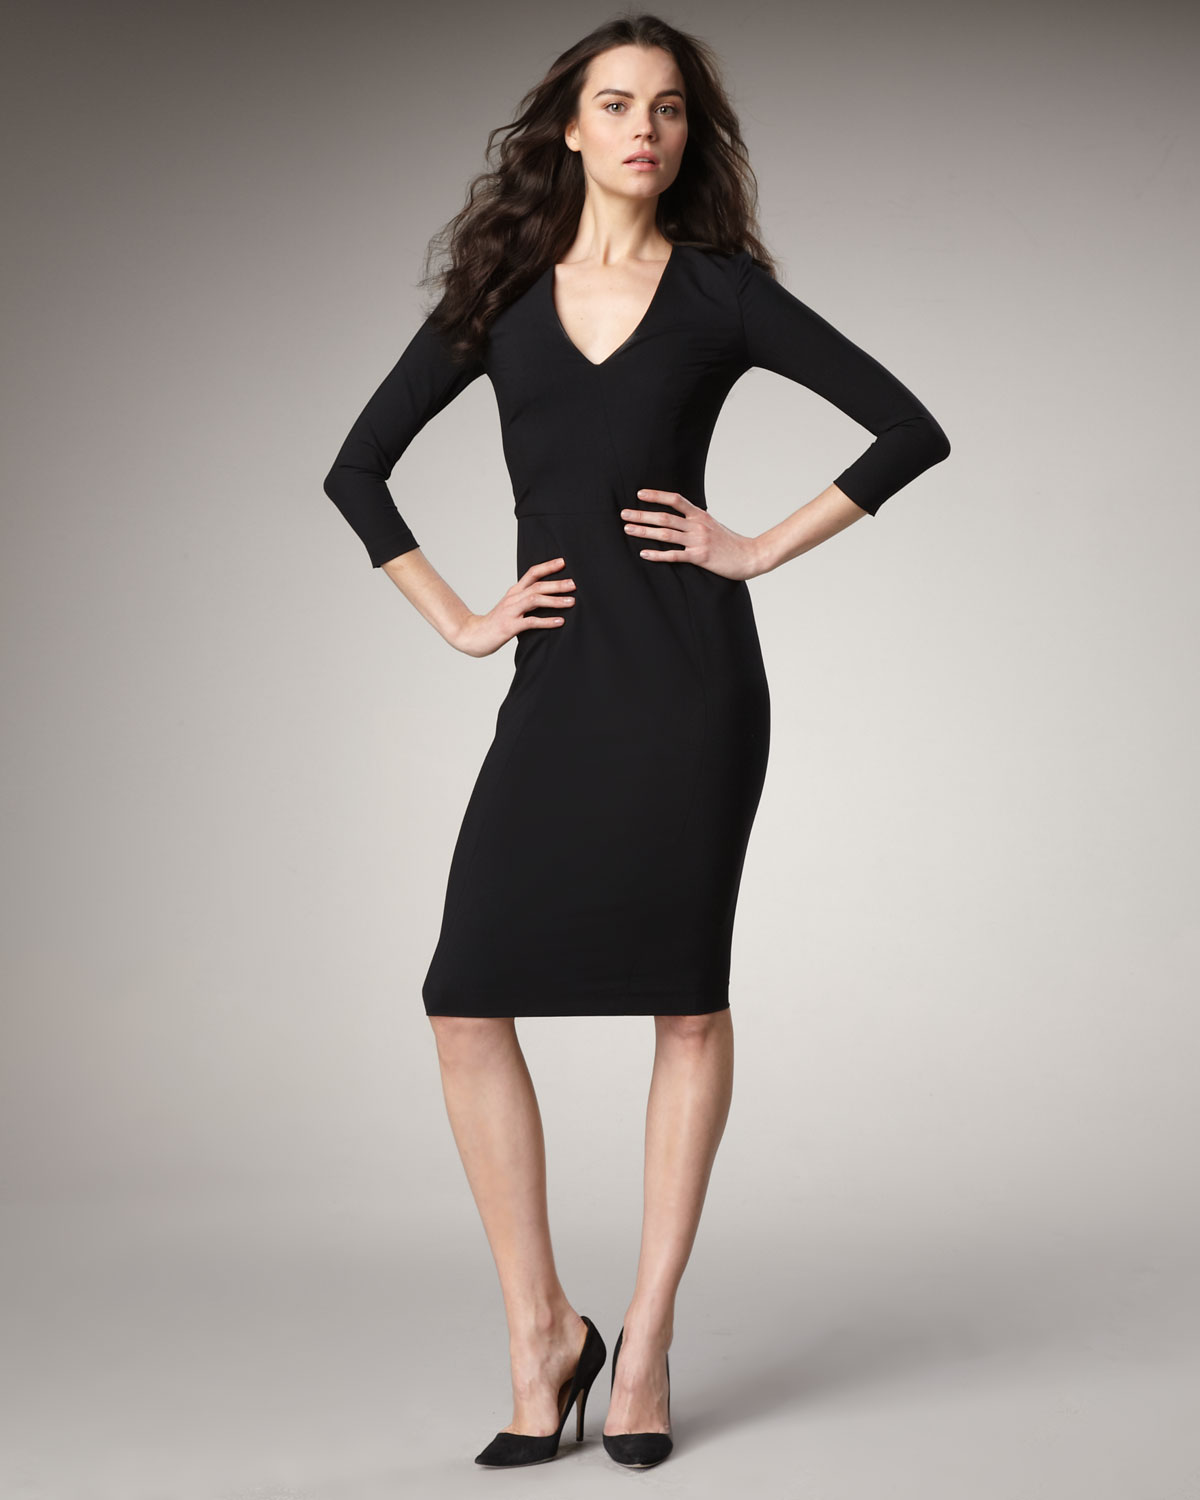 0b17d7f66e Gallery. Previously sold at: Neiman Marcus · Women's Pencil Dresses